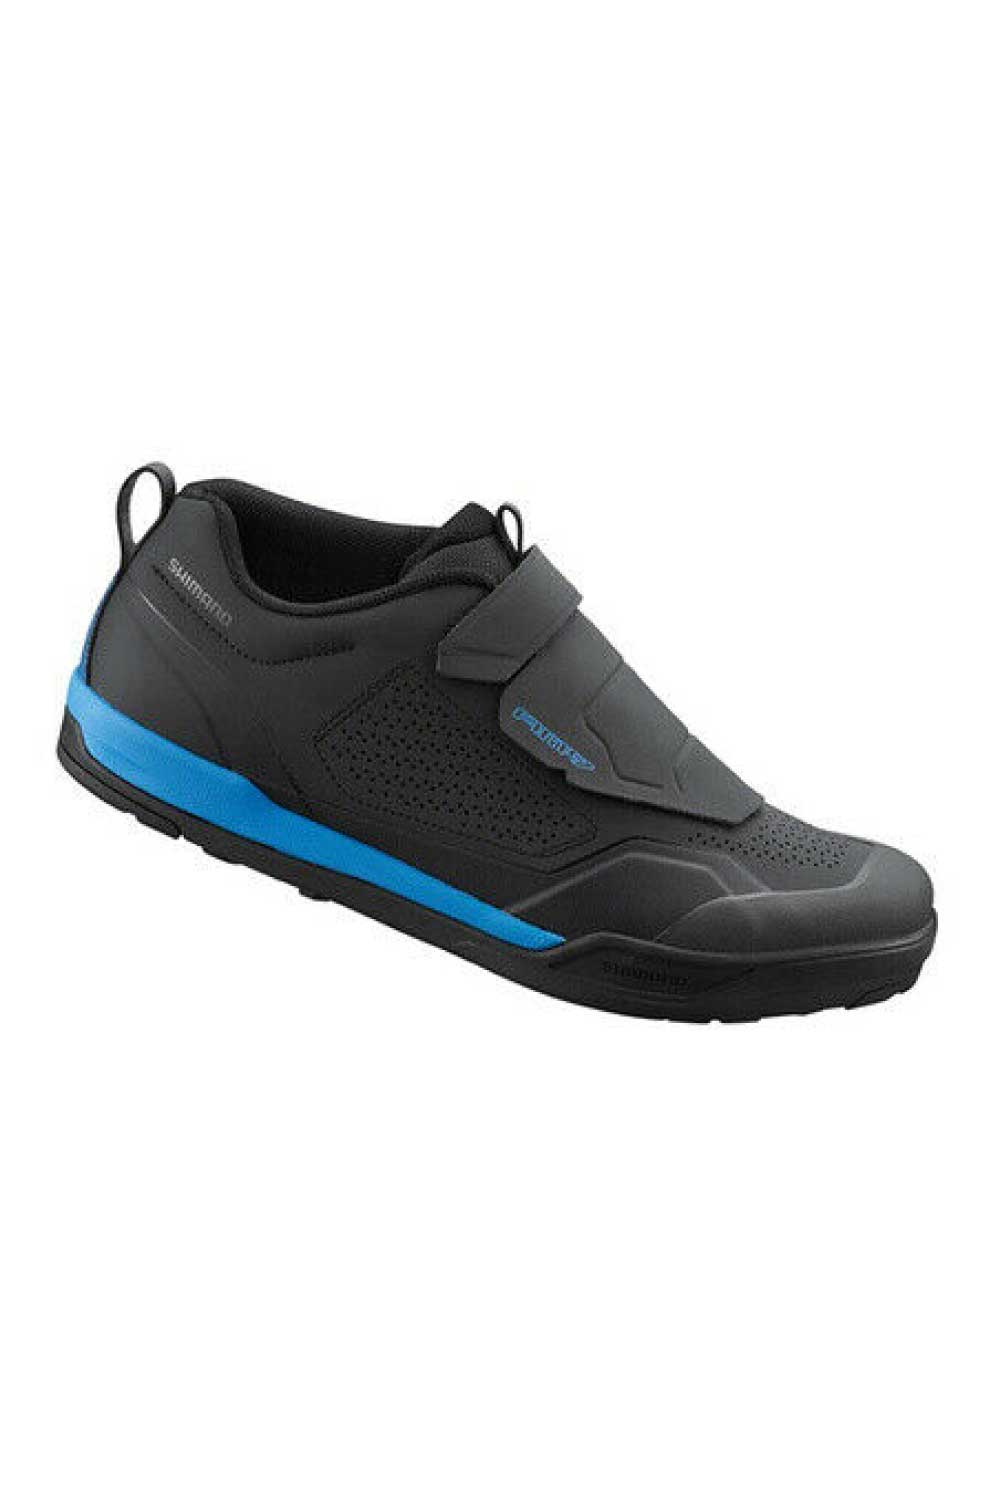 SHIMANO SH-AM902 Speed MTB Clip Shoes